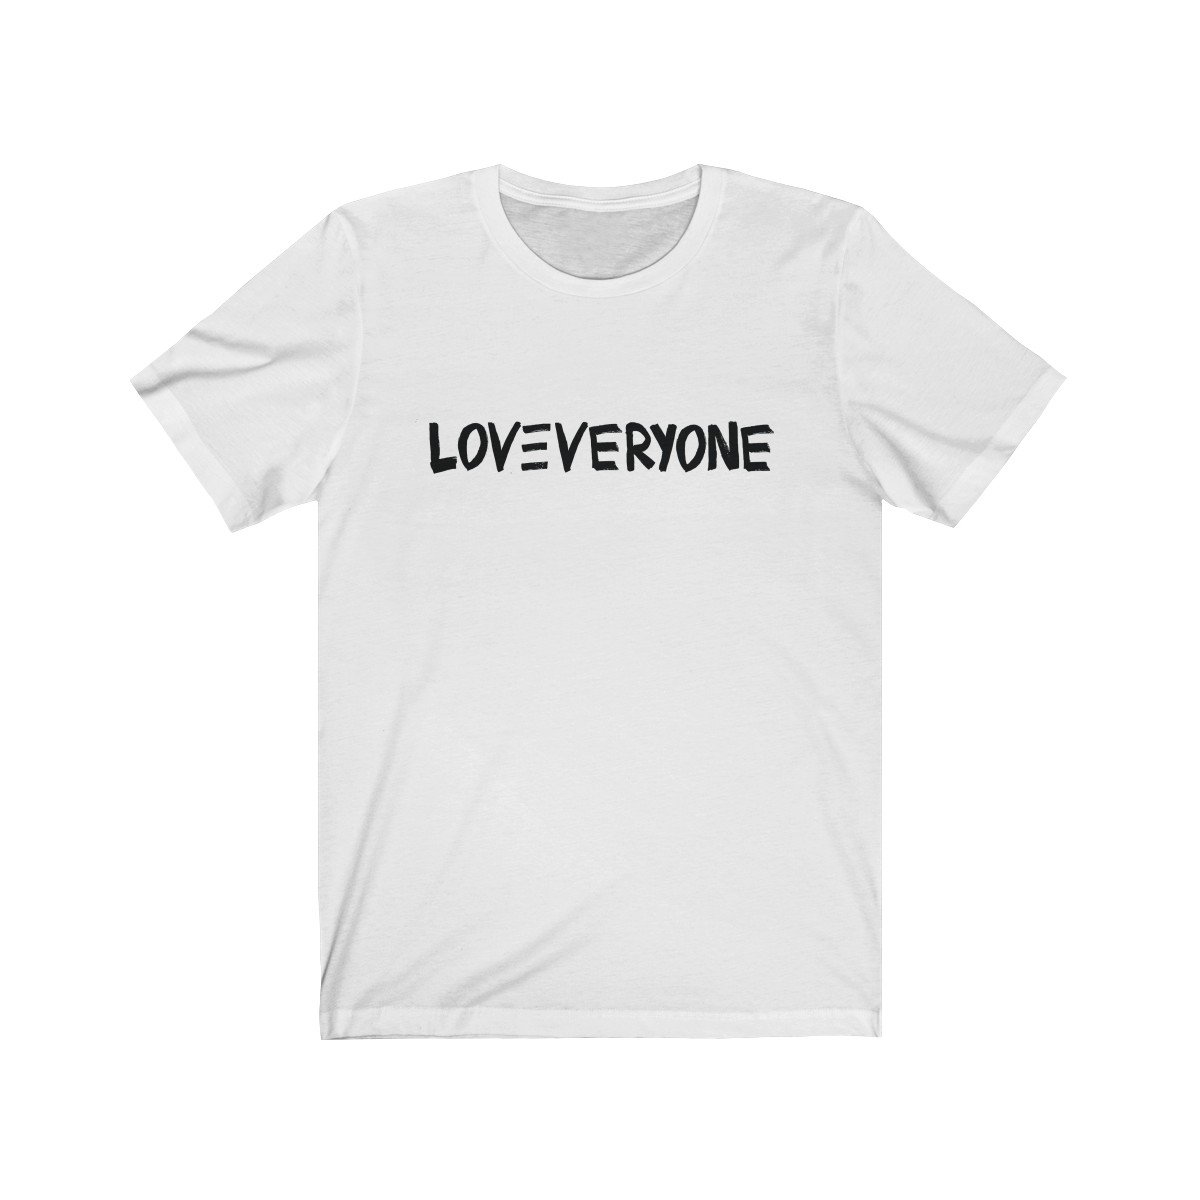 HYBRID NATION LOVE EVERYONE TEE (Sketch Ed.)